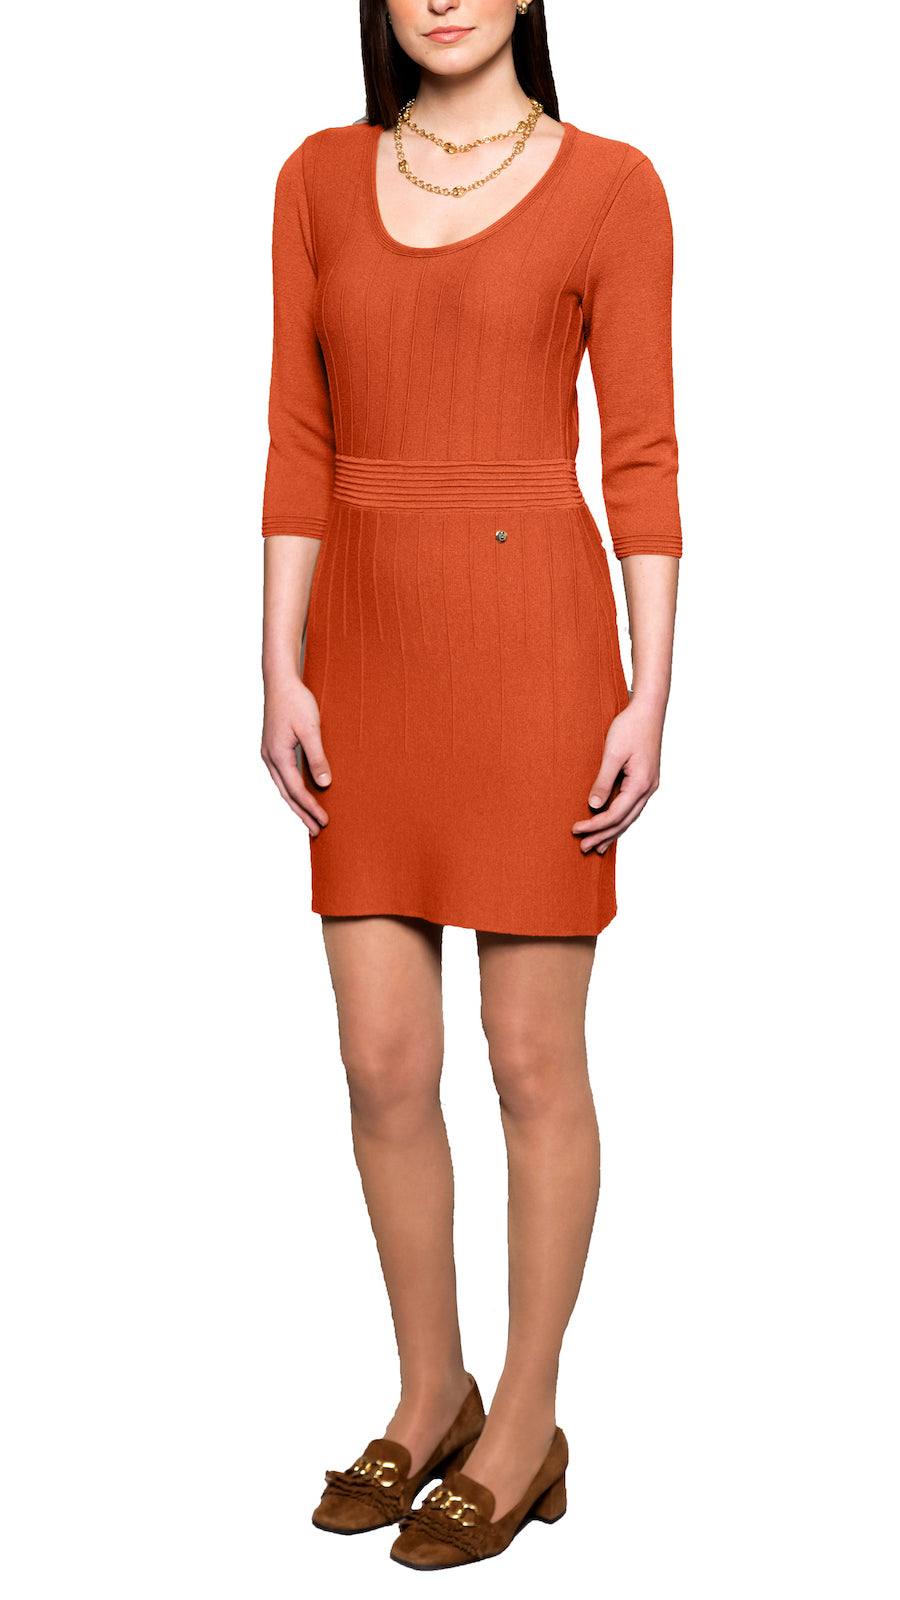 Julie knitted dress, Cinnamon Spice